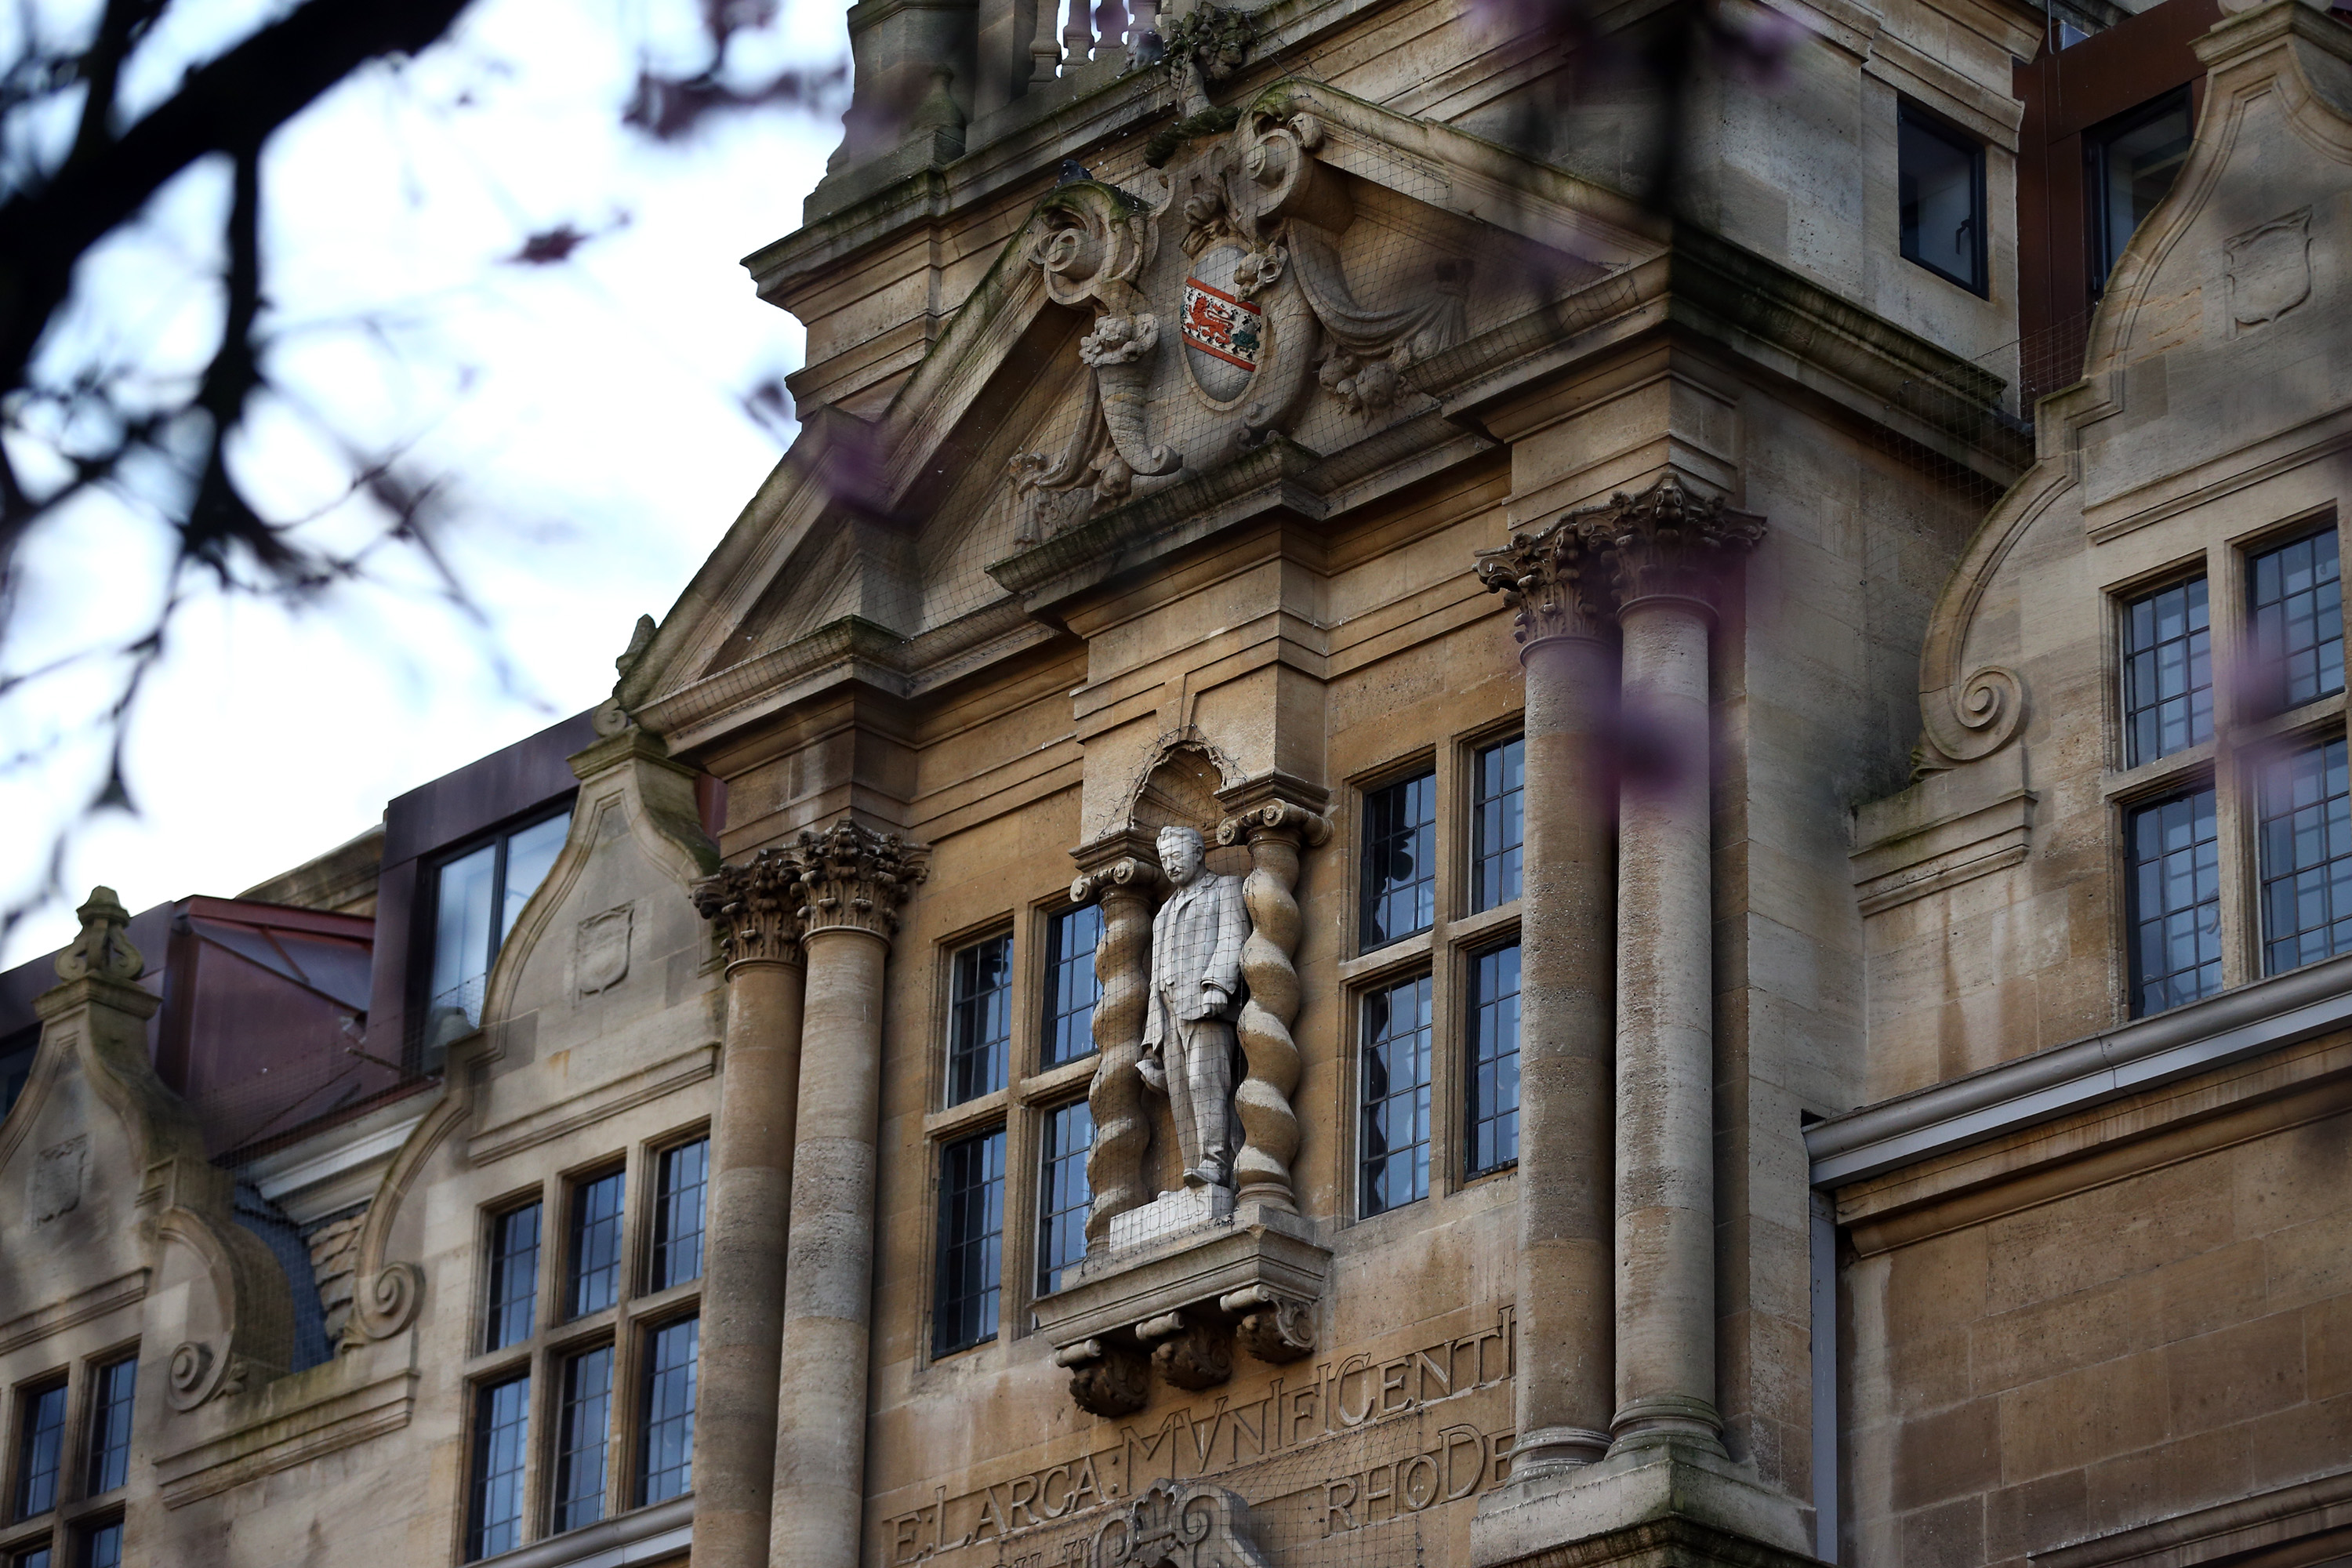 A statue of Cecil Rhodes is seen at Oriel College on February 2, 2016 in Oxford University, England.